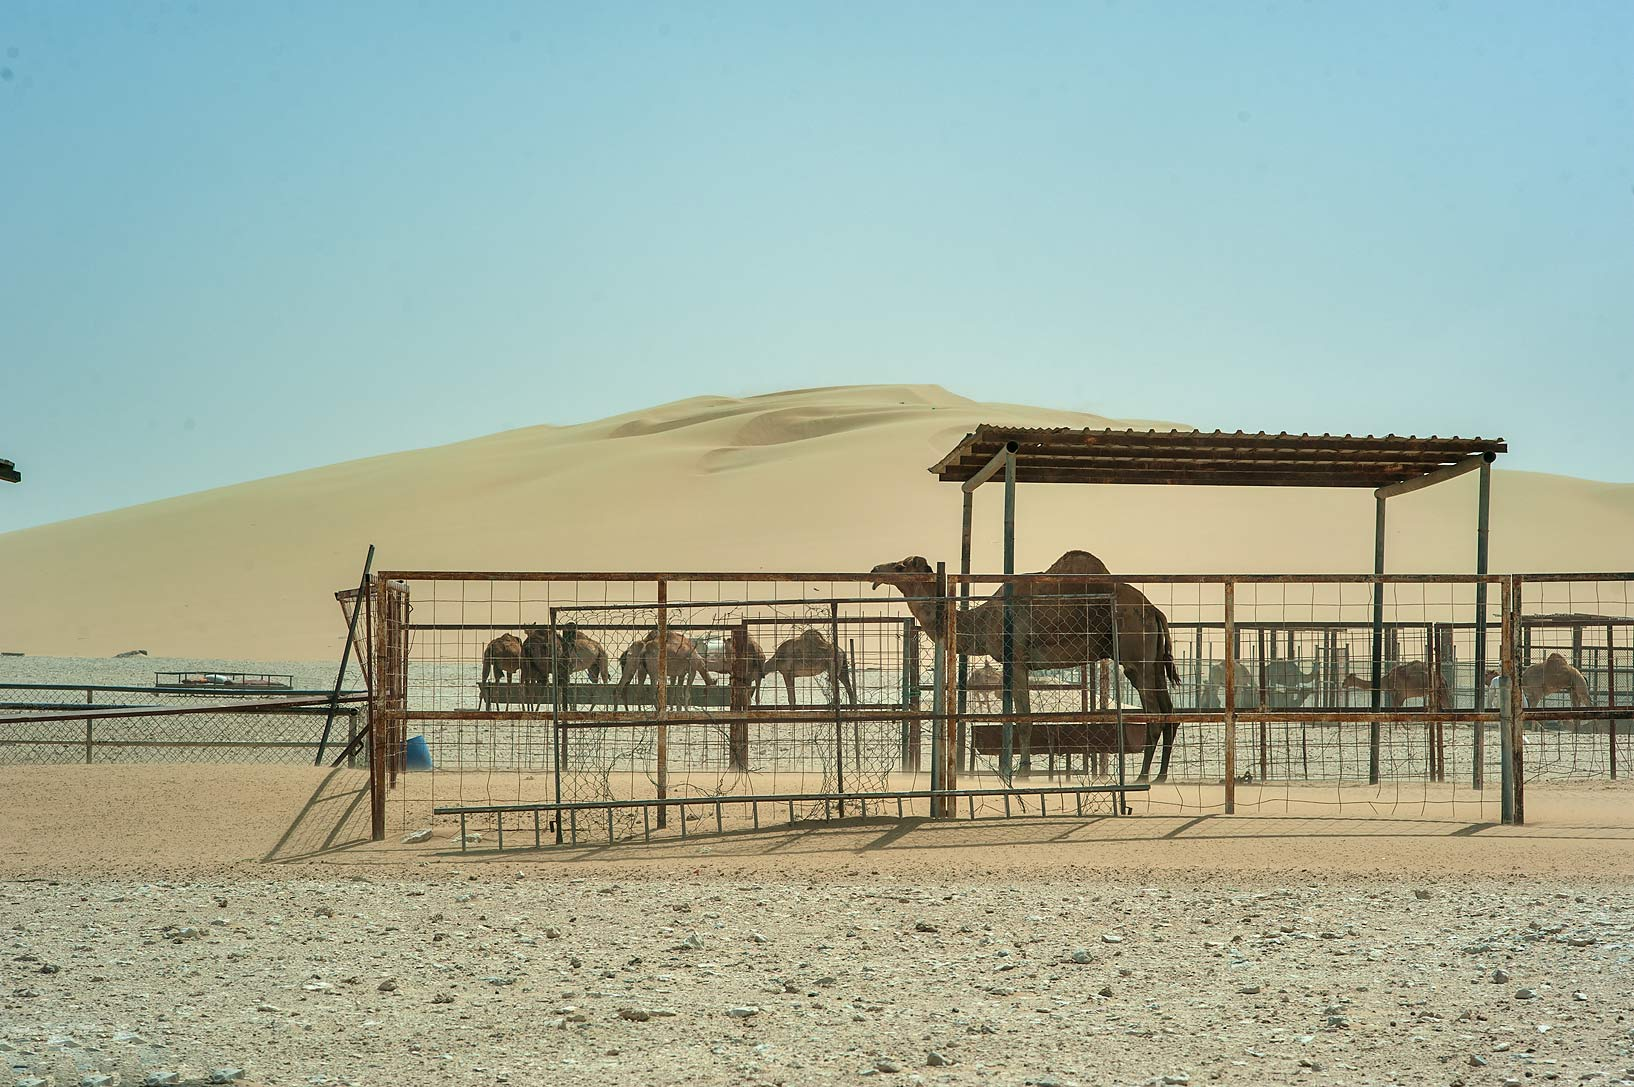 Camel farm in dunes area south from Abu Nahlah. Qatar